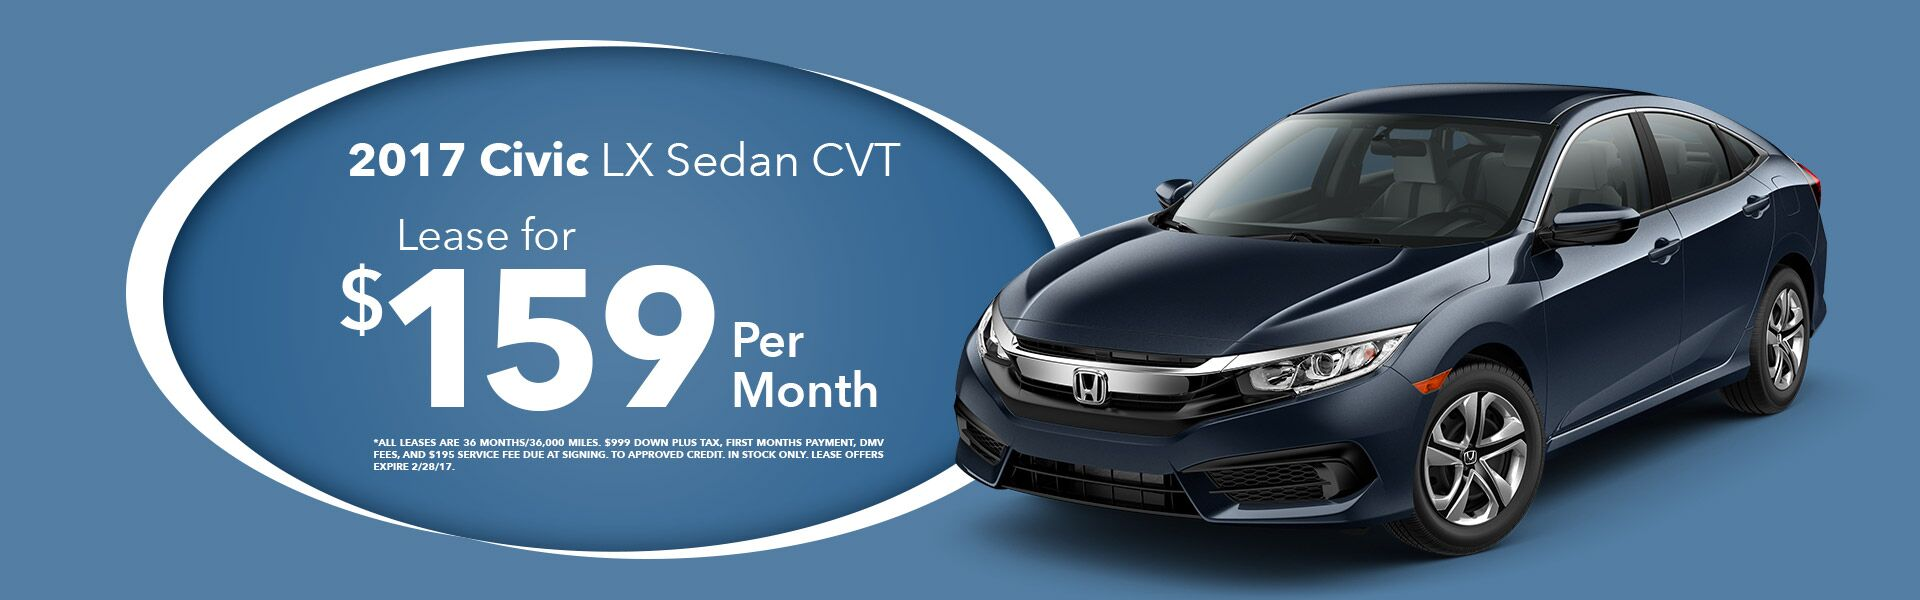 Civic Lease Special!